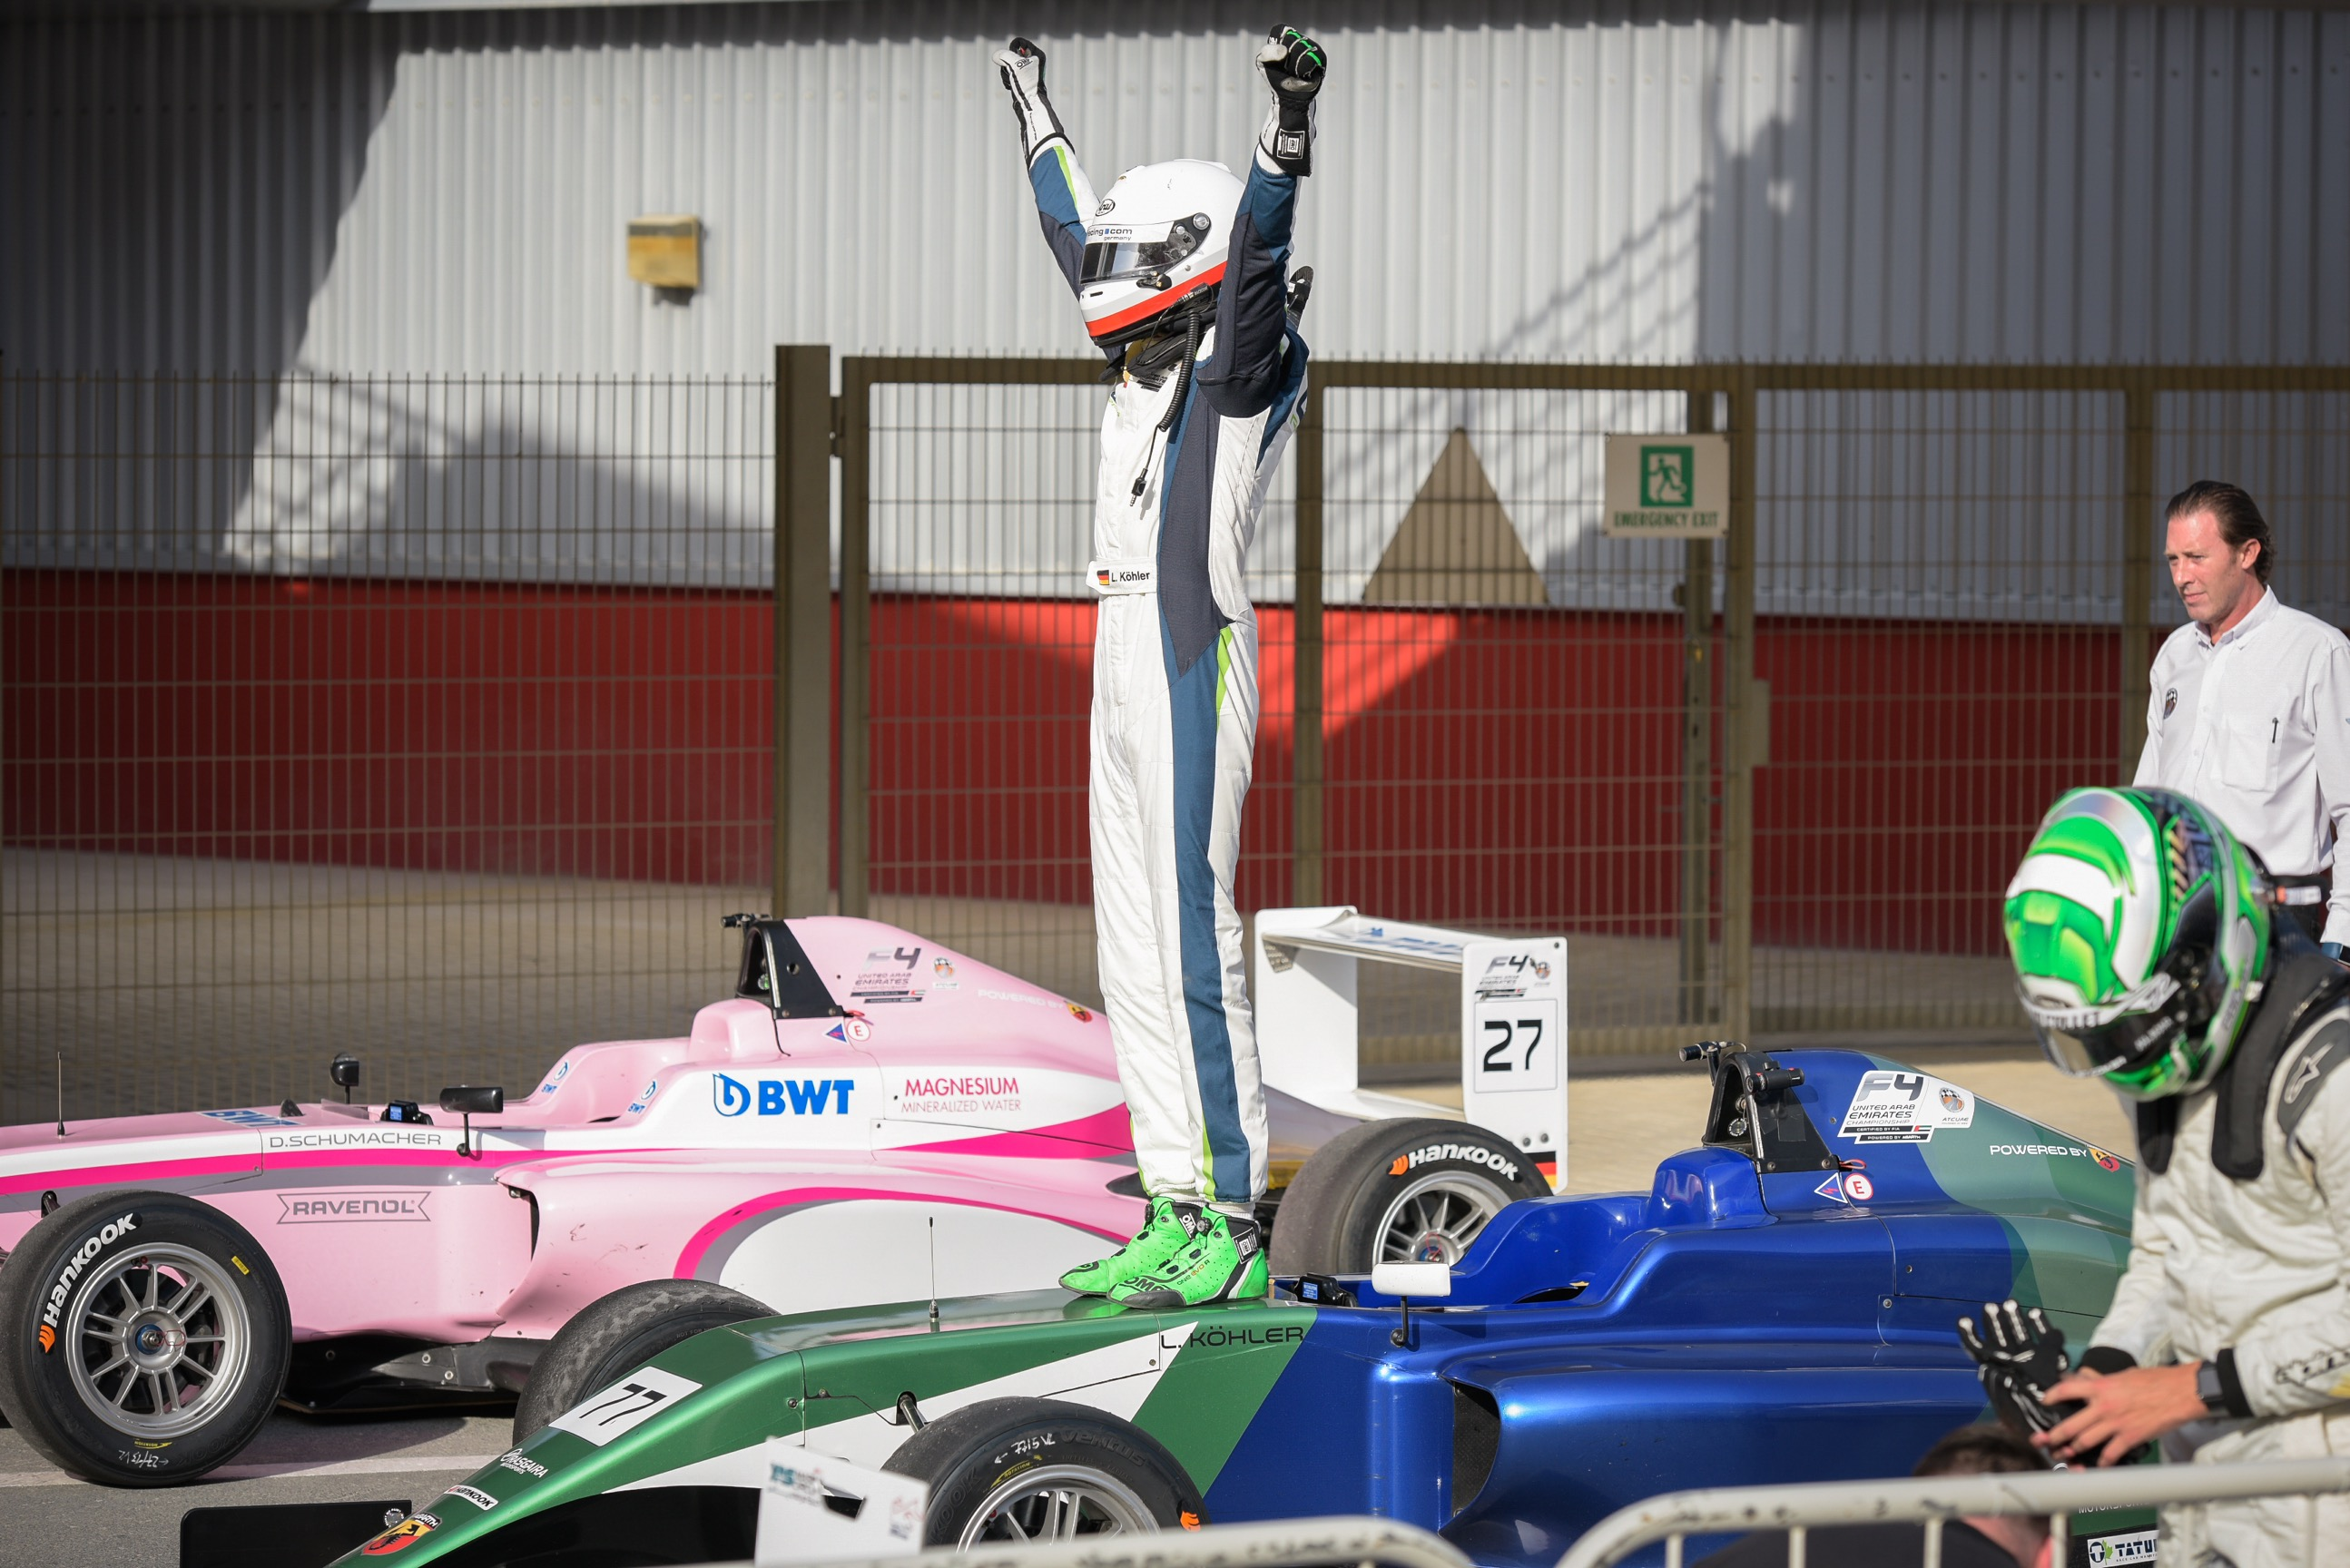 SCHUMACHER AND KÖHLER BREAK THROUGH FOR MAIDEN OPEN-WHEELER RACE WINS IN F4UAE